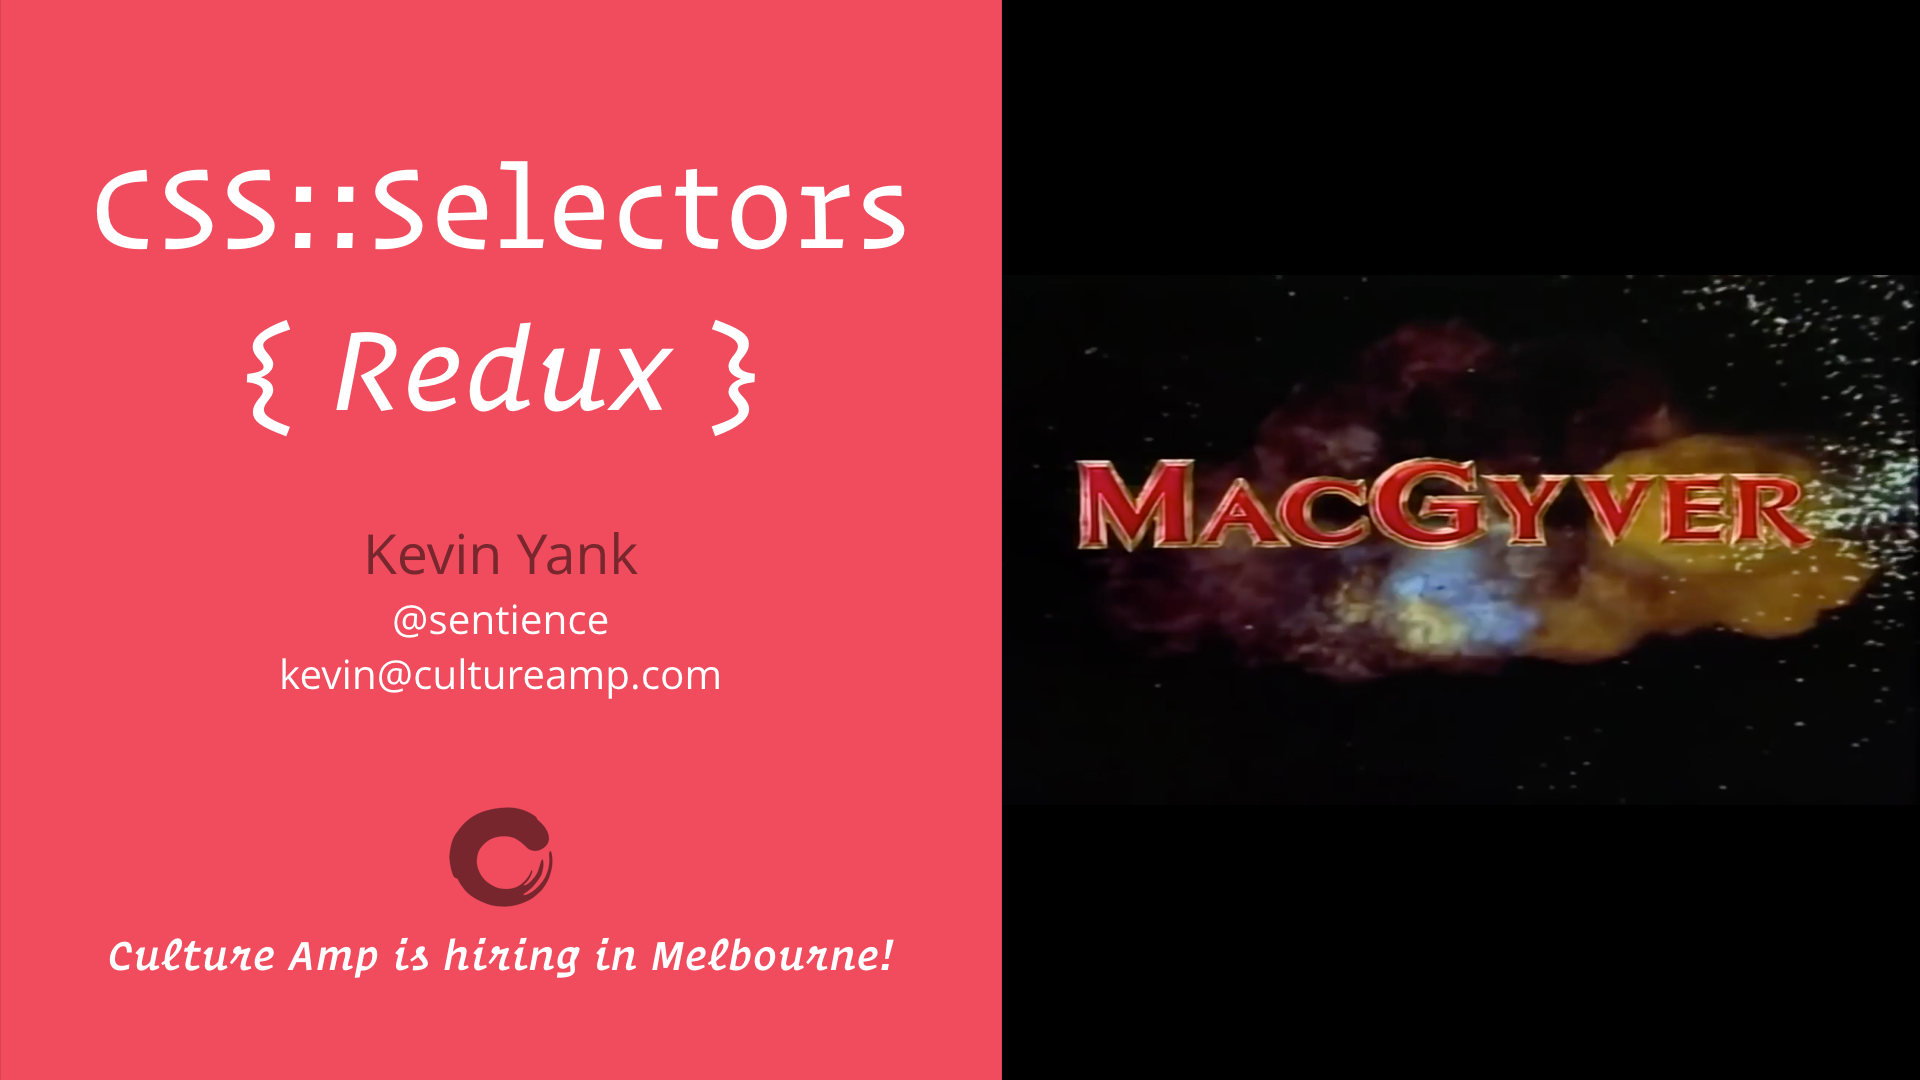 slide: CSS Selectors Redux, Kevin Yank, @sentience, kevin@cultureamp.com, Culture Amp is hiring in Melbourne!